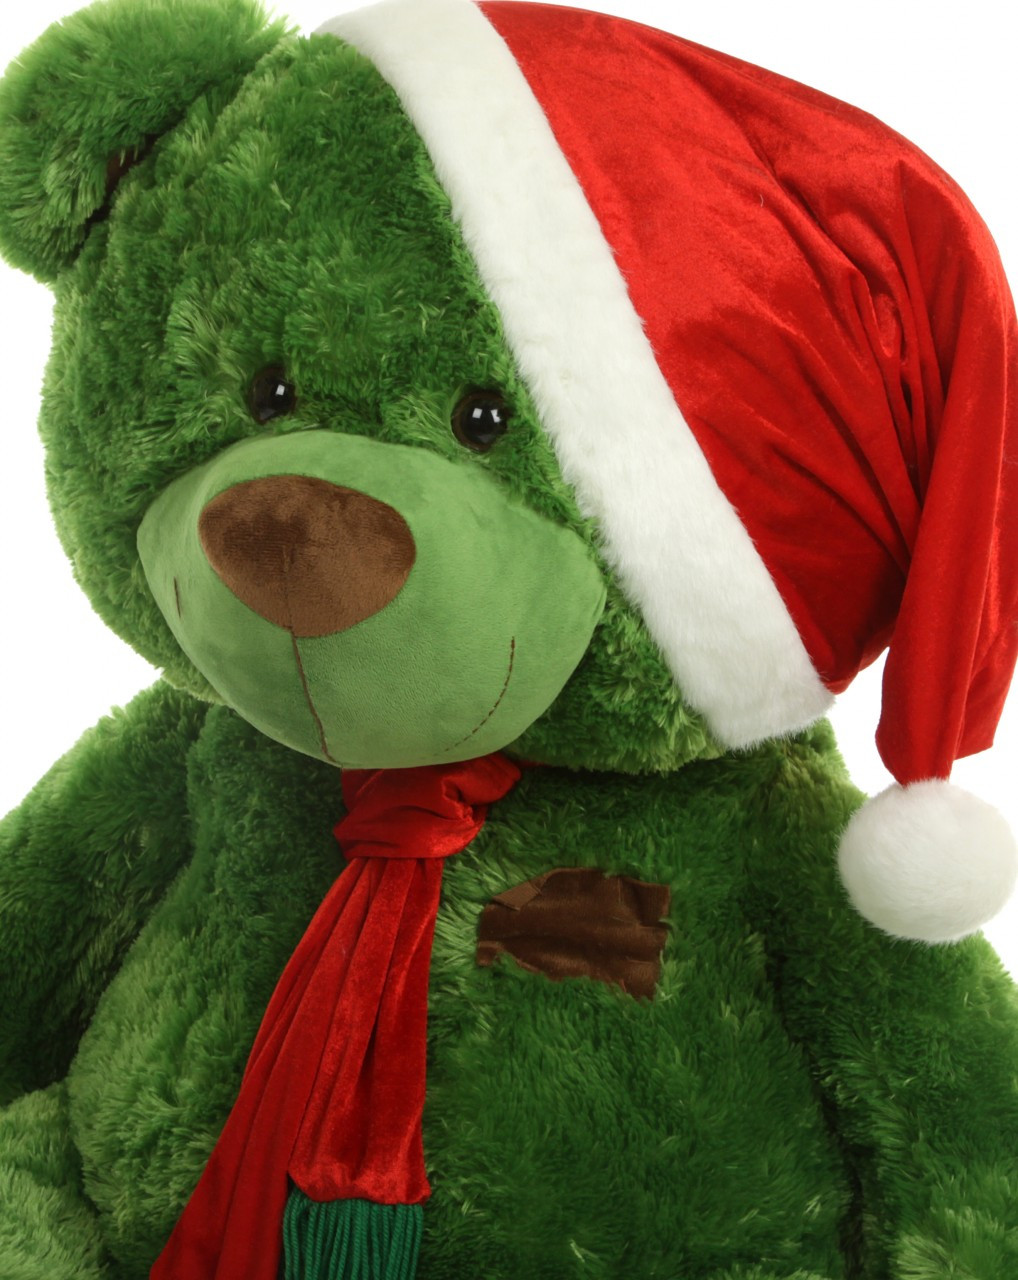 Adorable Green Christmas Teddy Bear with Red Scarf and Santa Hat